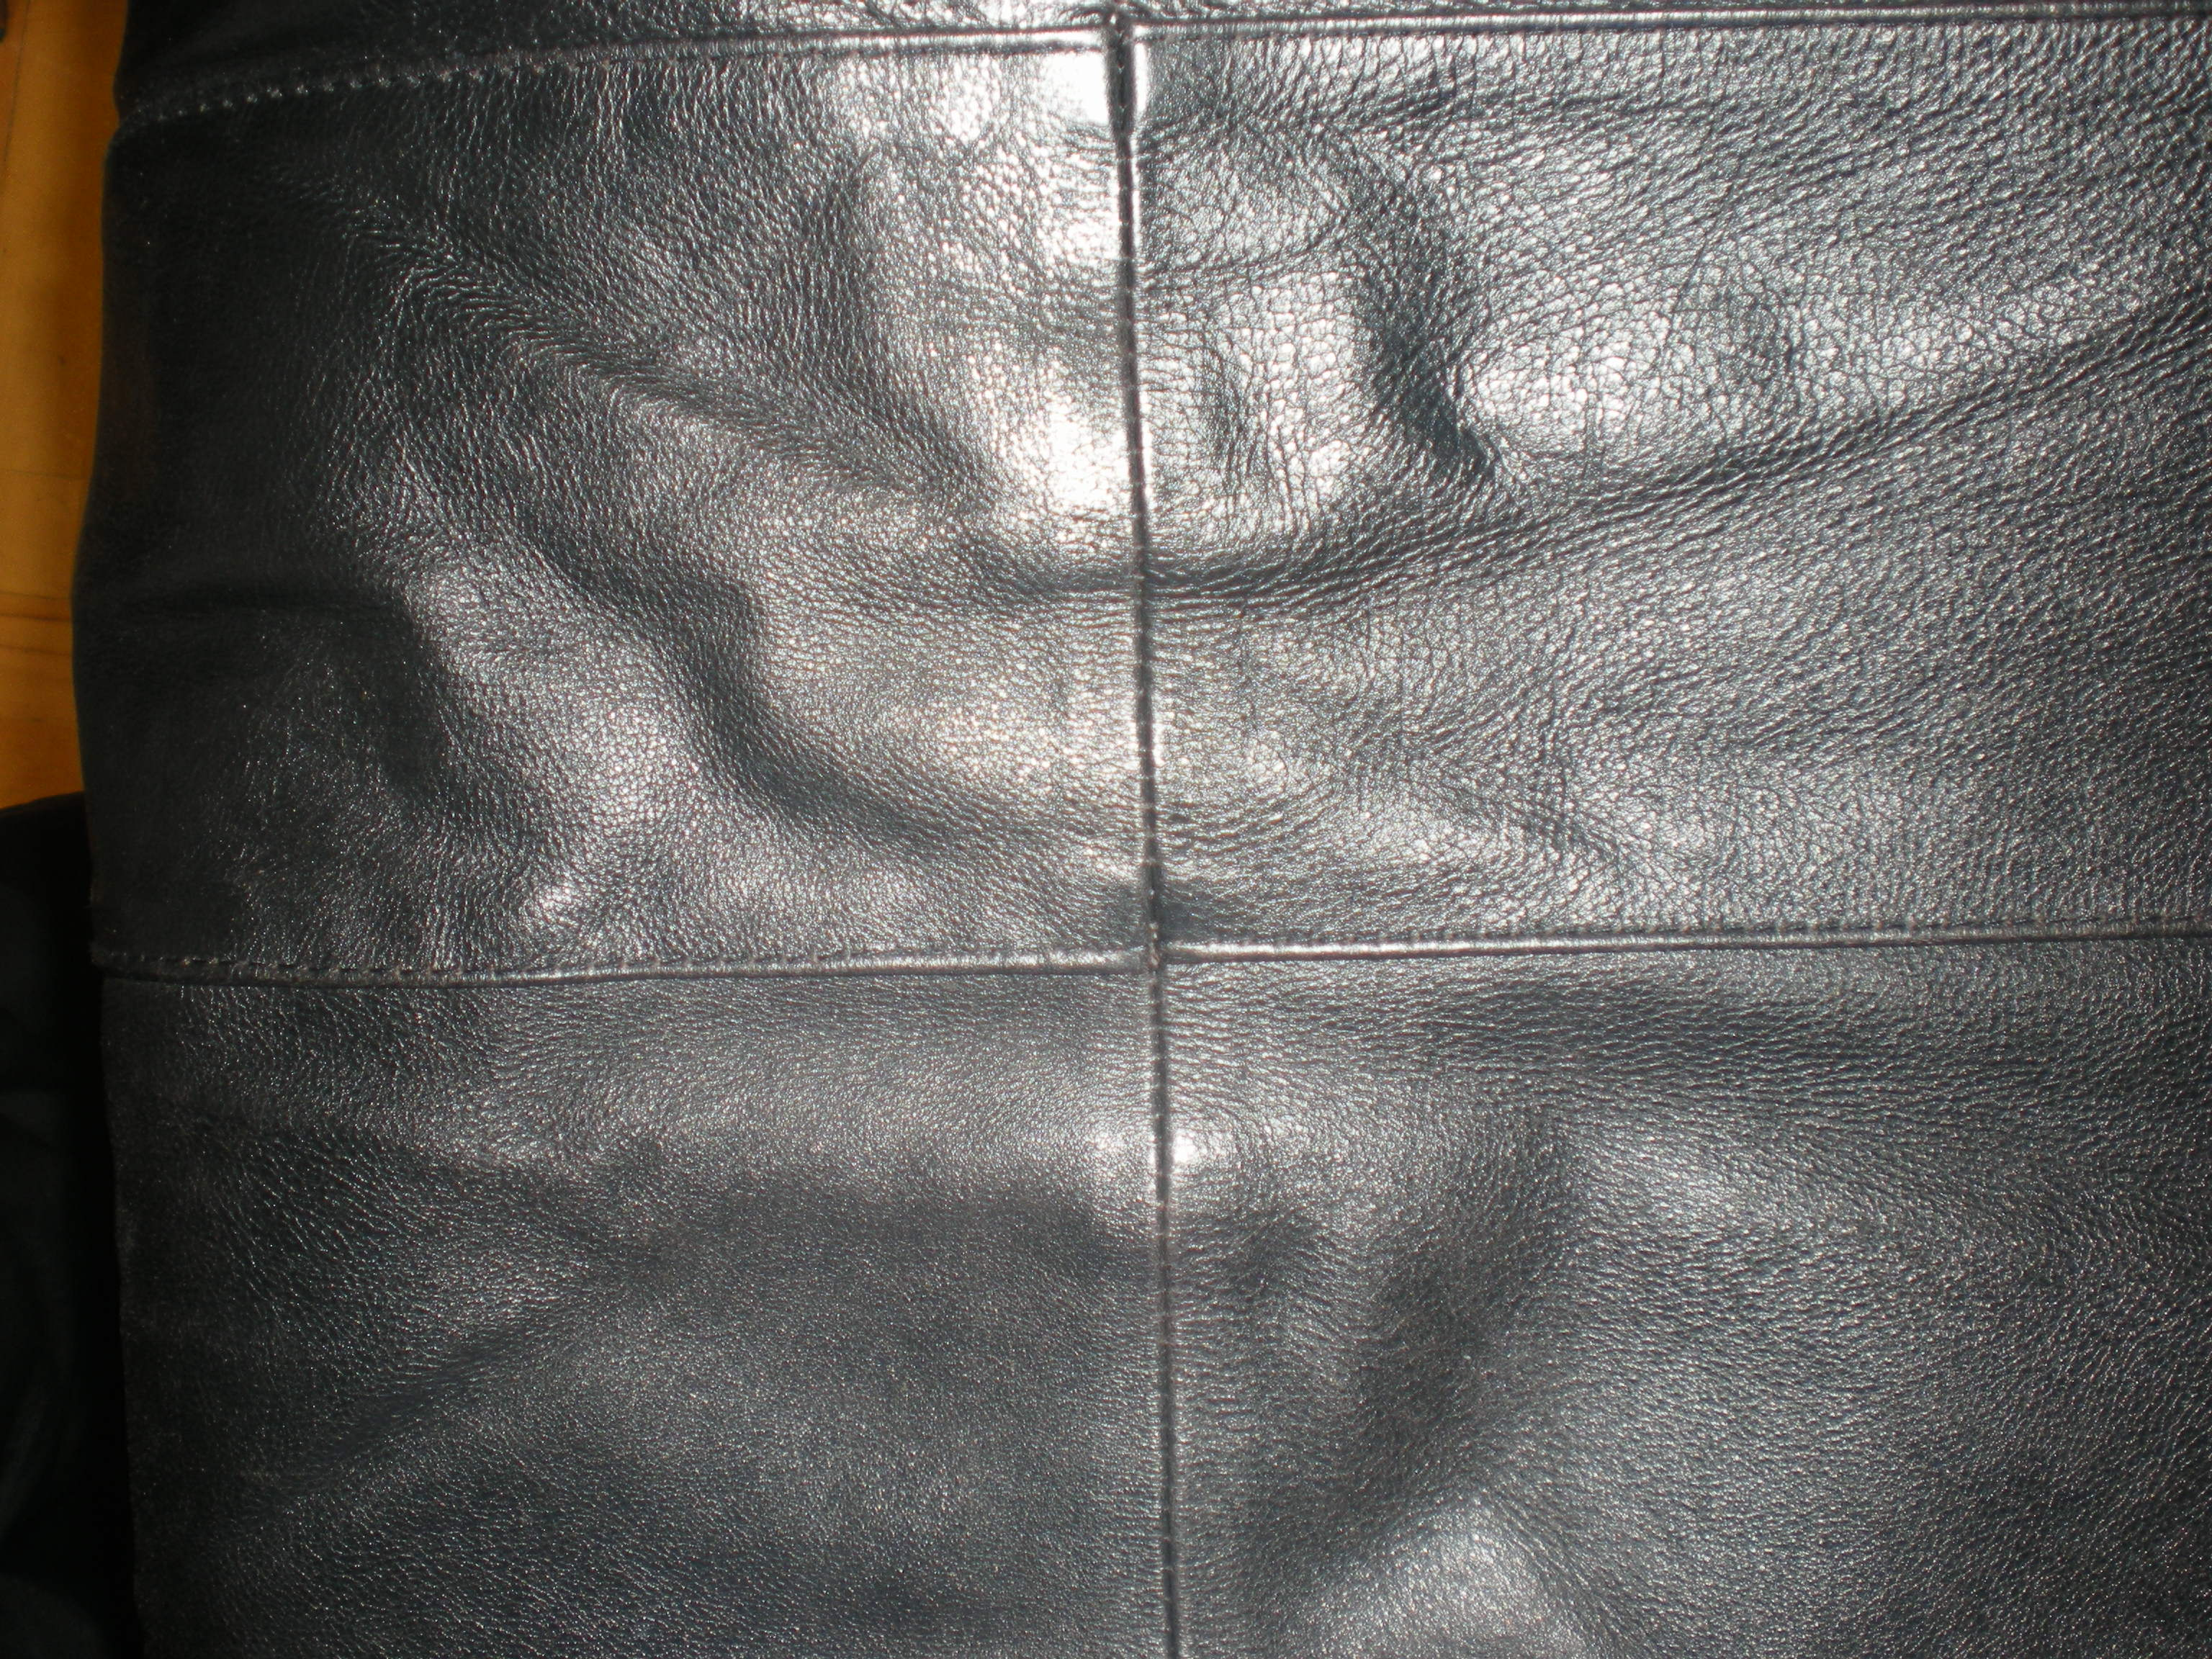 Black Leather Jacket Texture